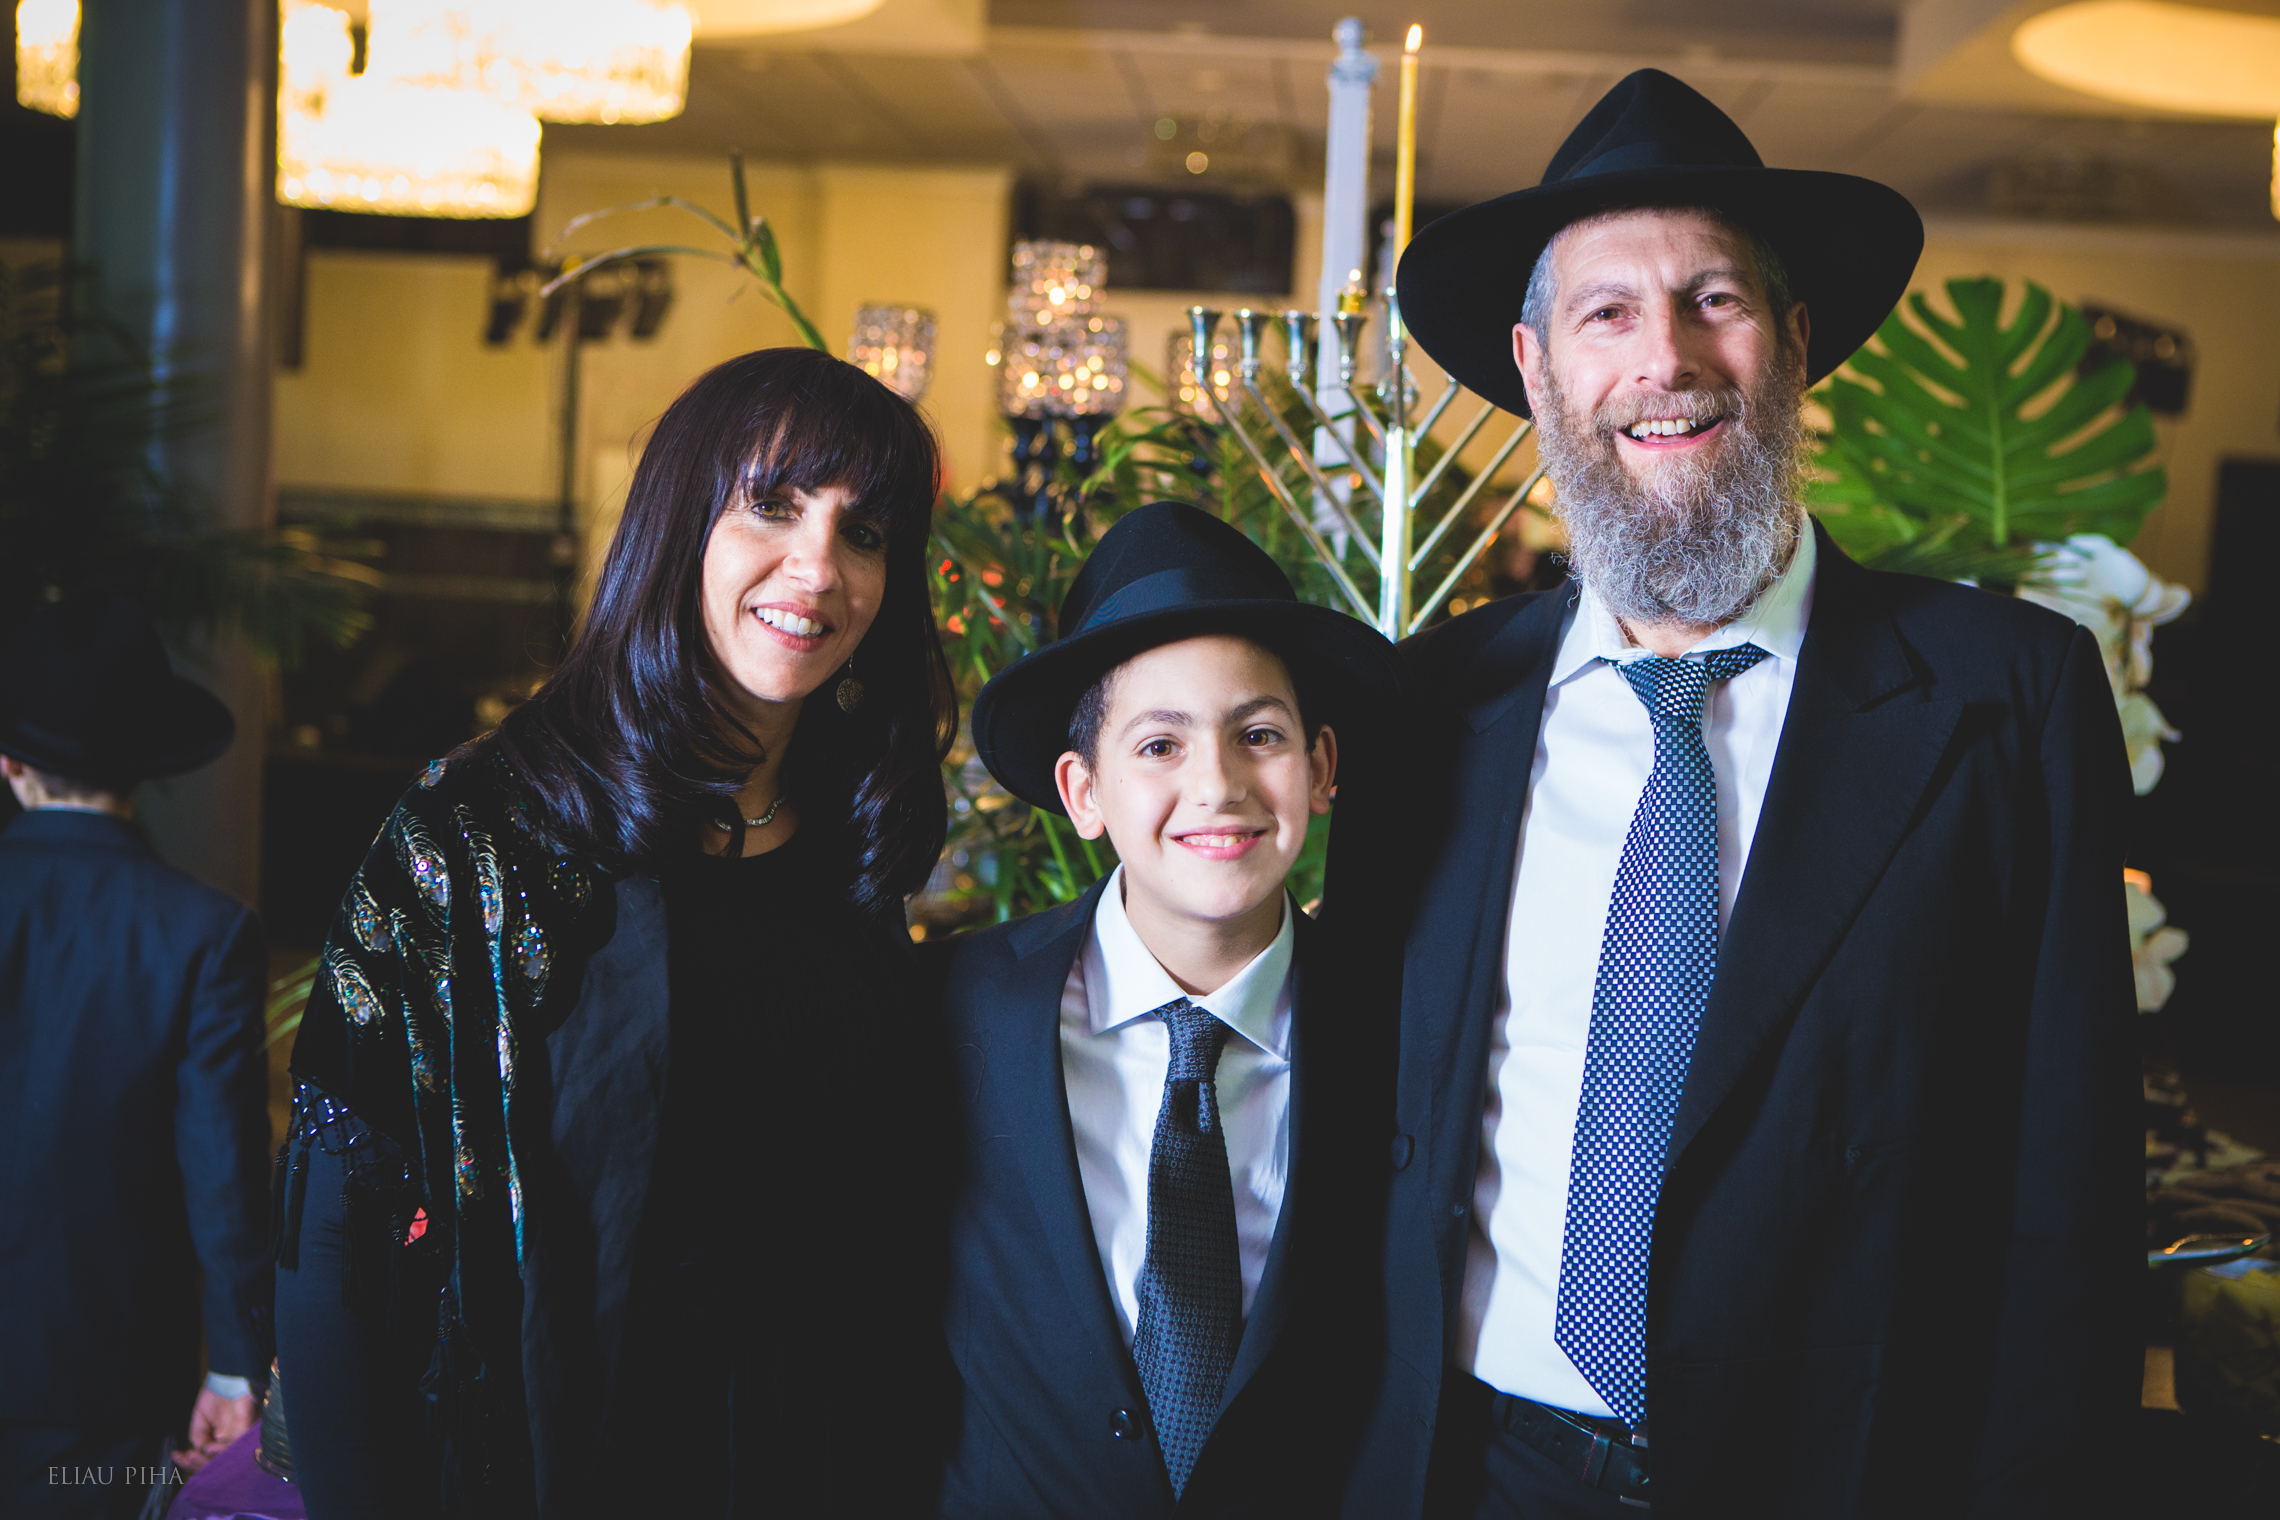 Bar-Mitzvah Levi Meer | Piha studio photography, new york, events, -7.jpg-01.jpg